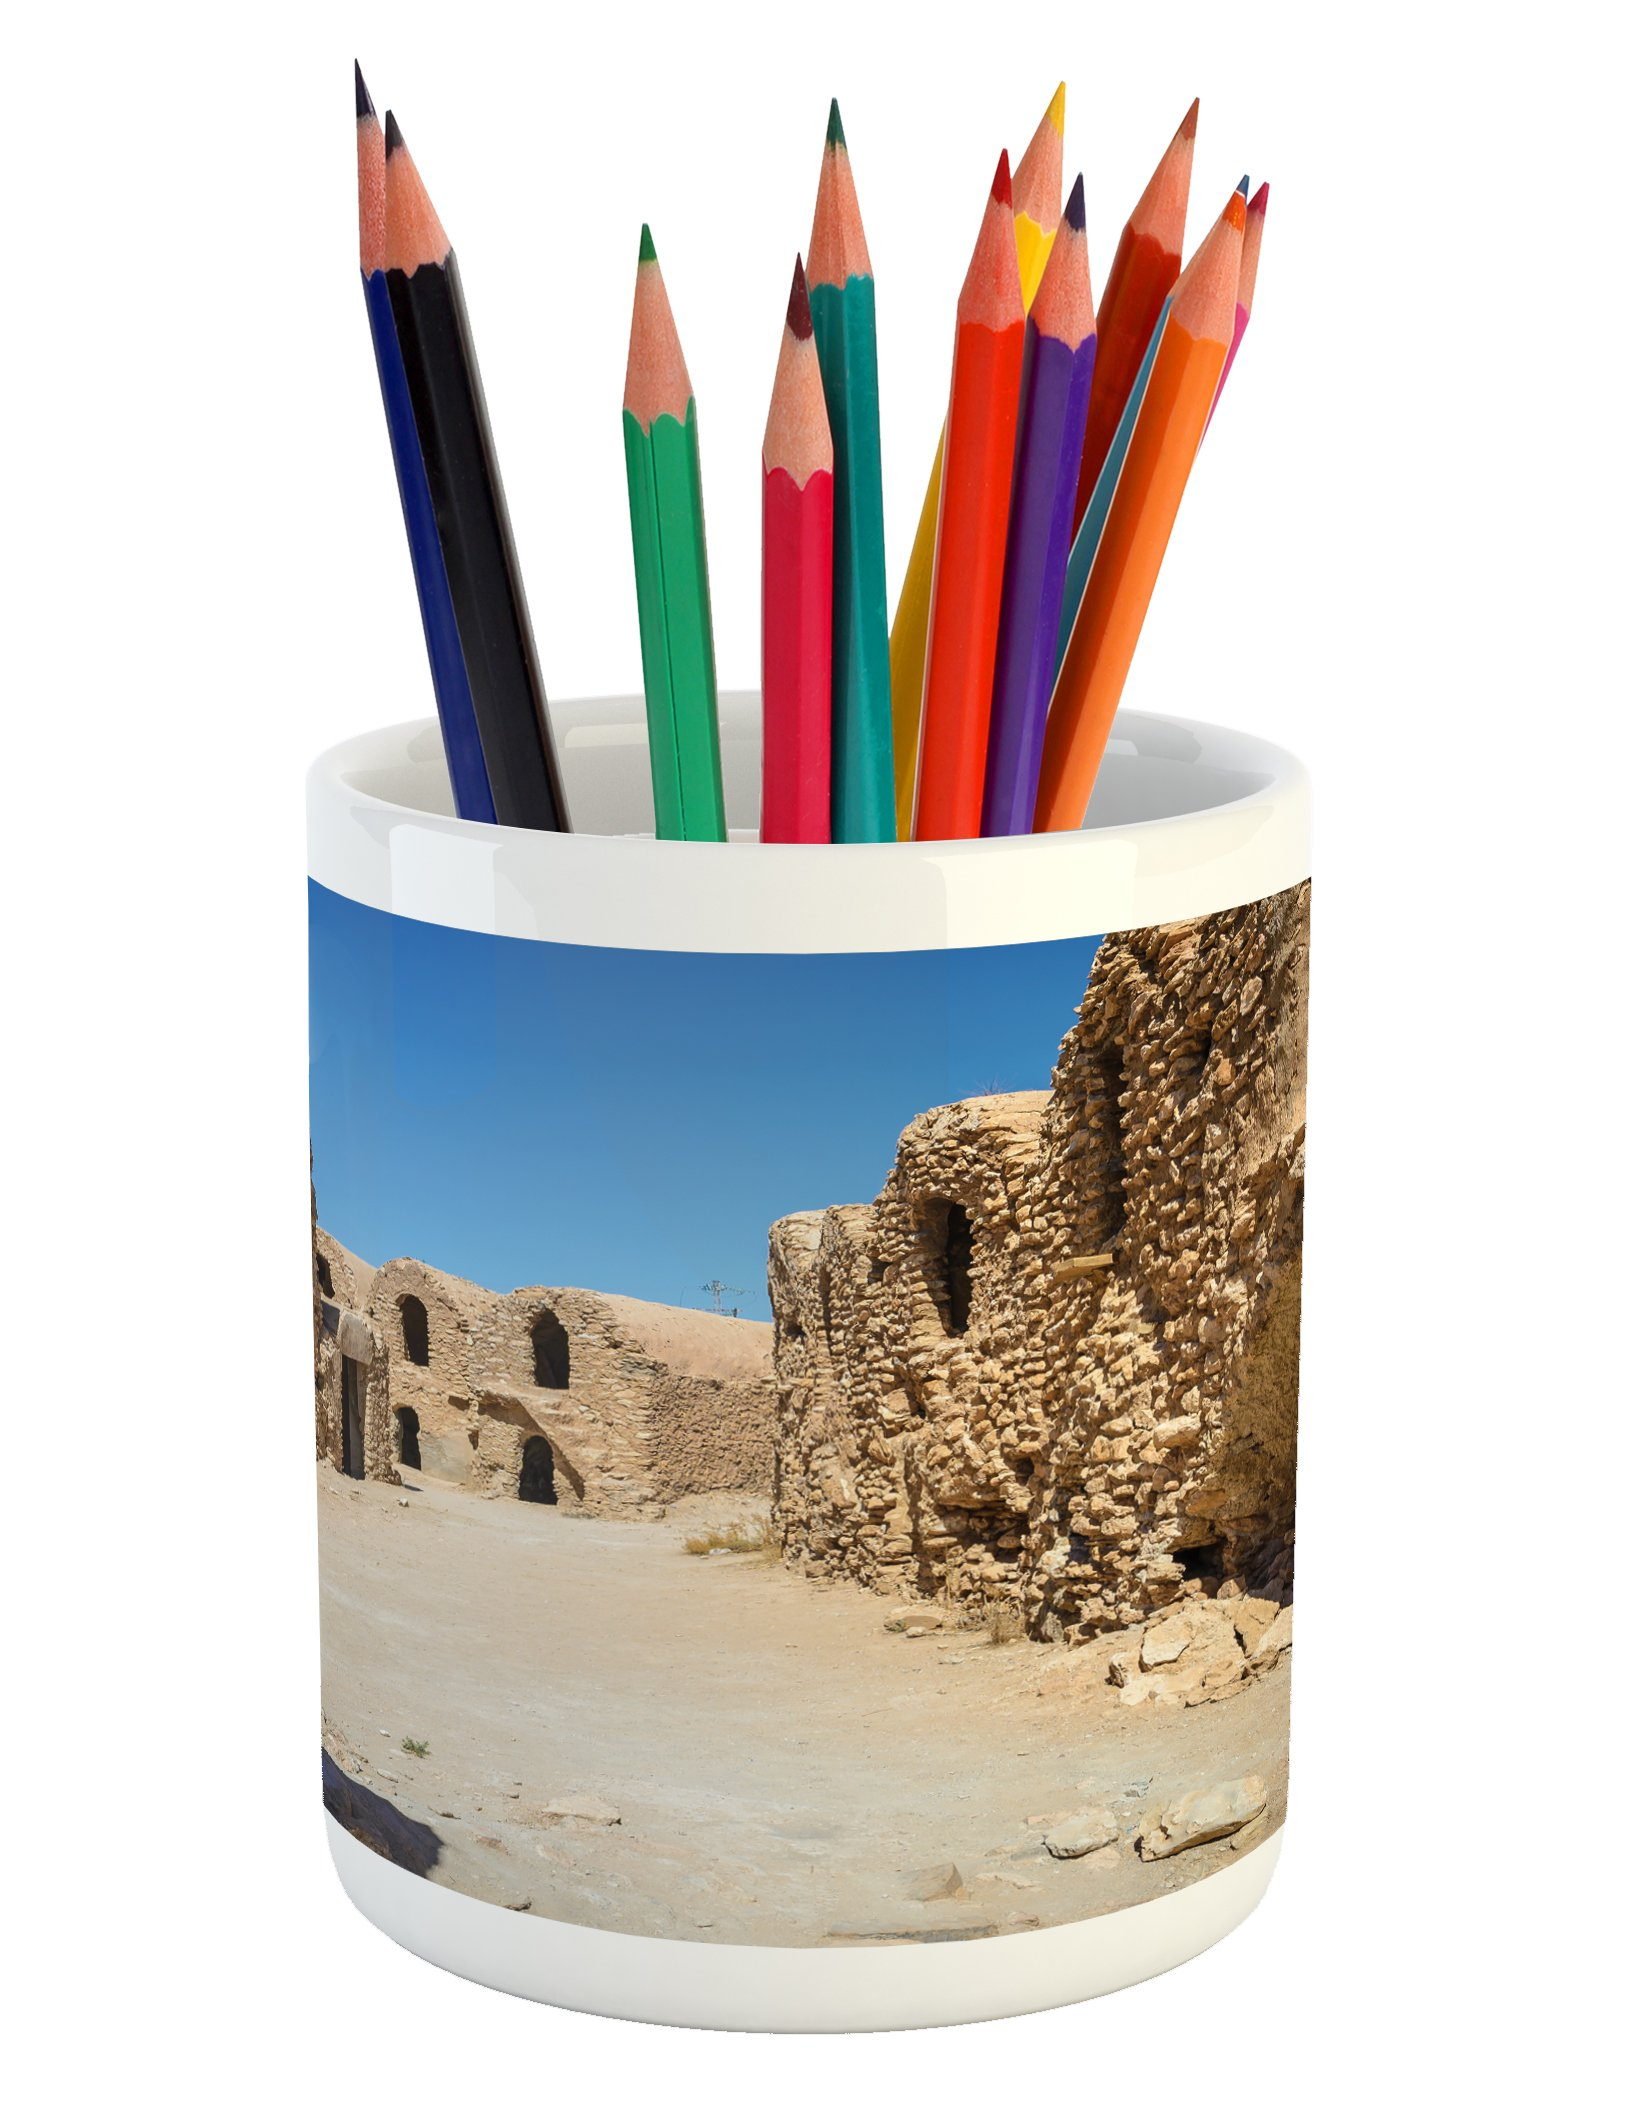 Ambesonne Galaxy Pencil Pen Holder, One of Abandoned Sets of the Movie in the Desert Phantom Menace Antique Cave Houses, Printed Ceramic Pencil Pen Holder for Desk Office Accessory, Brown Blue